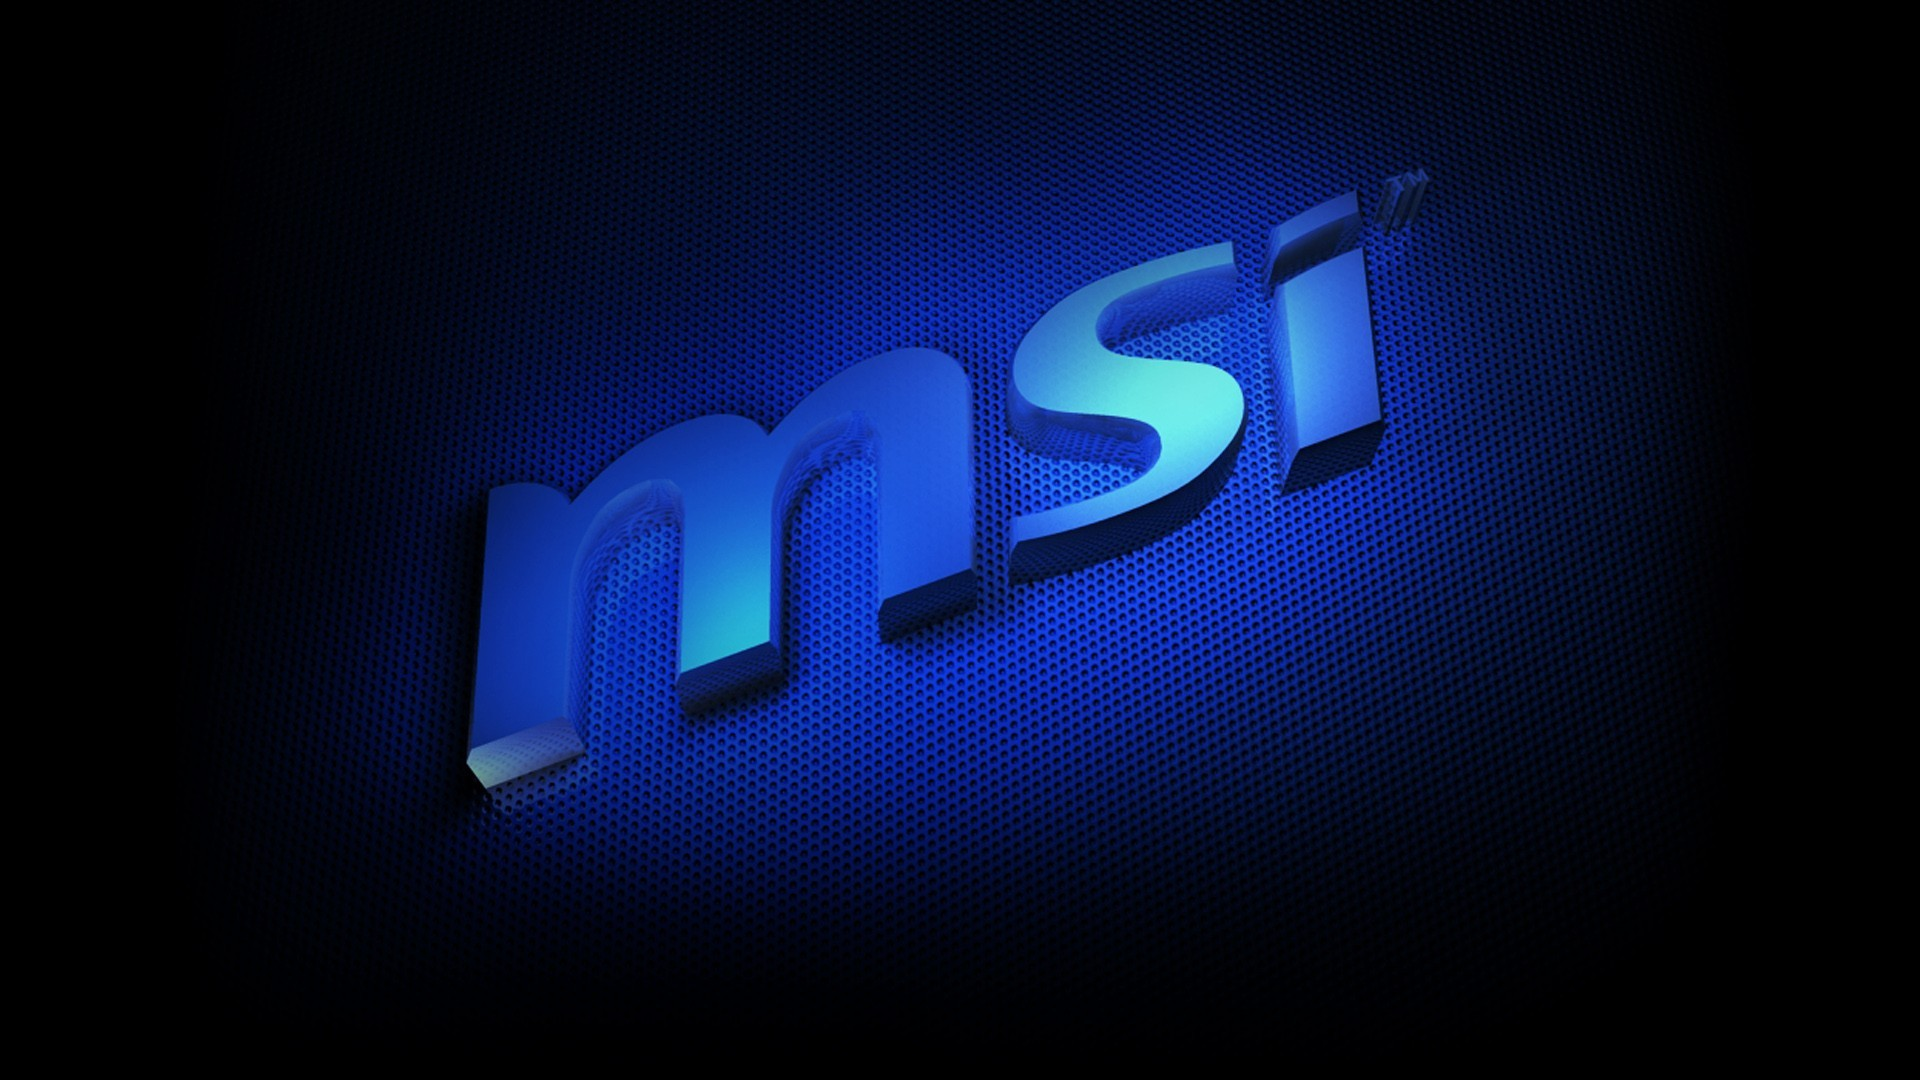 … msi wallpaper wallpapersafari; msi g dragon wallpapers hd  desktop and mobile backgrounds …